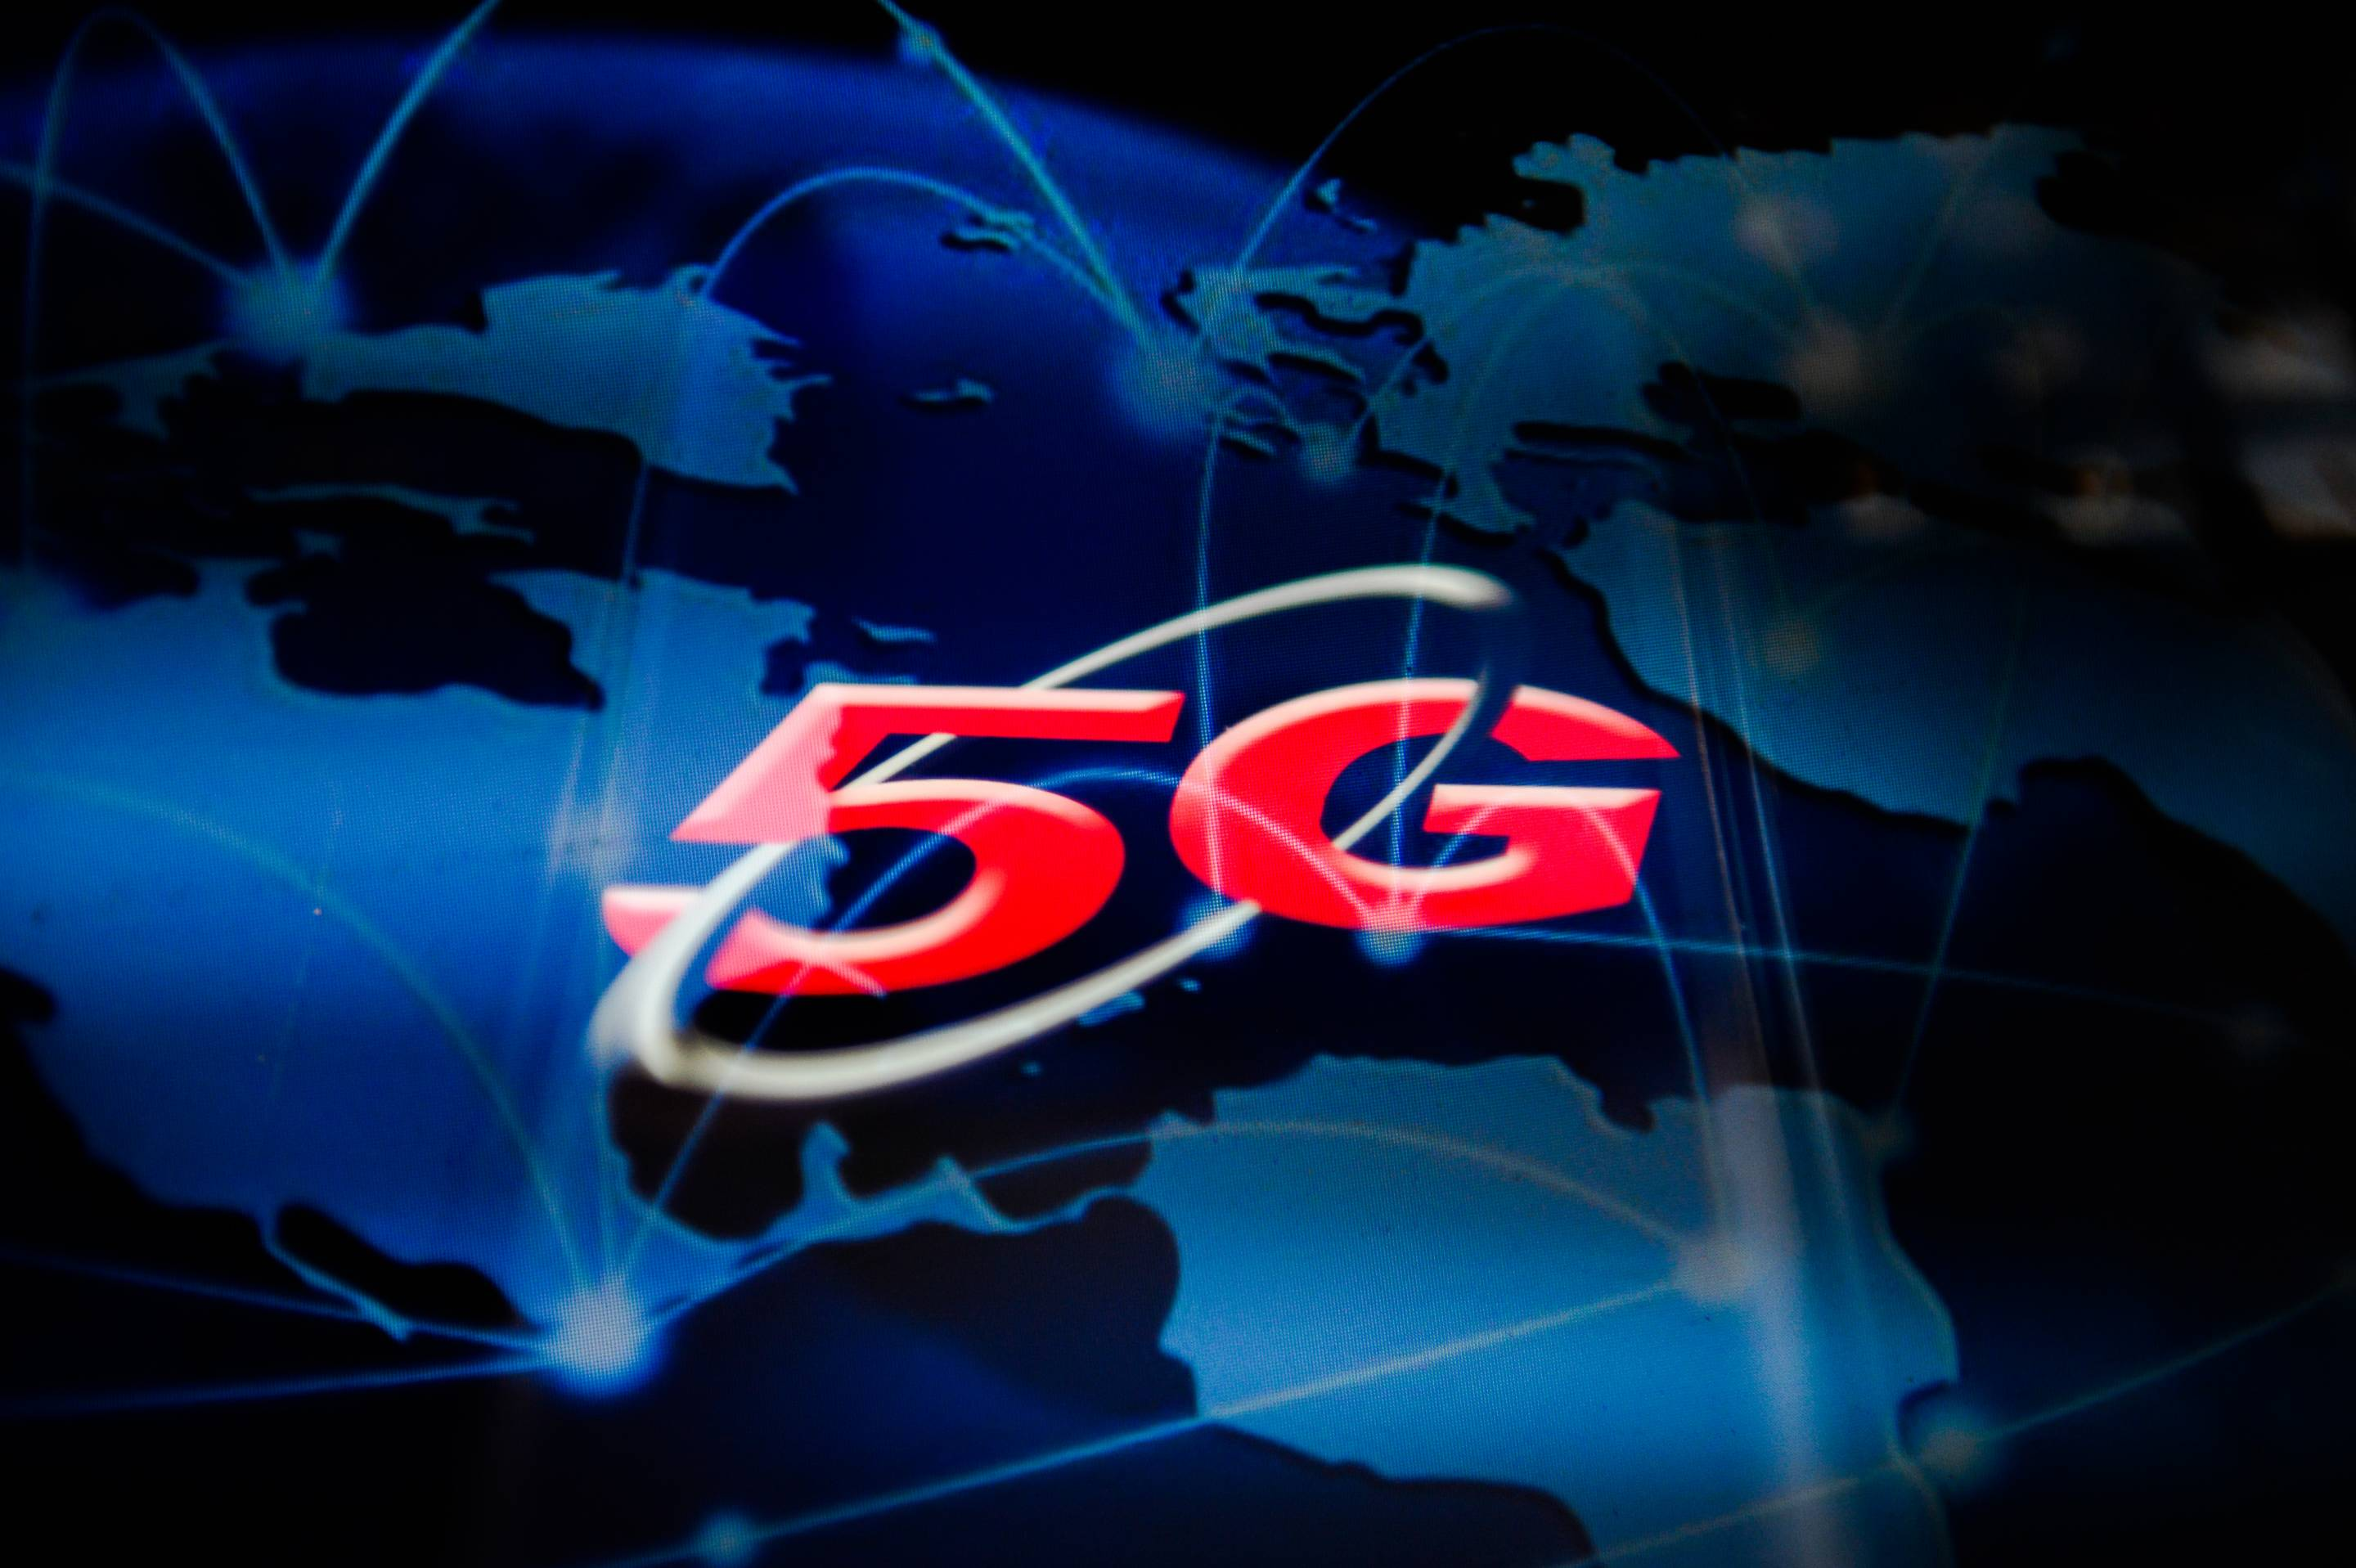 As 5G internet service launches, mobile providers claim it will change everything. What is 5G and what will it do?